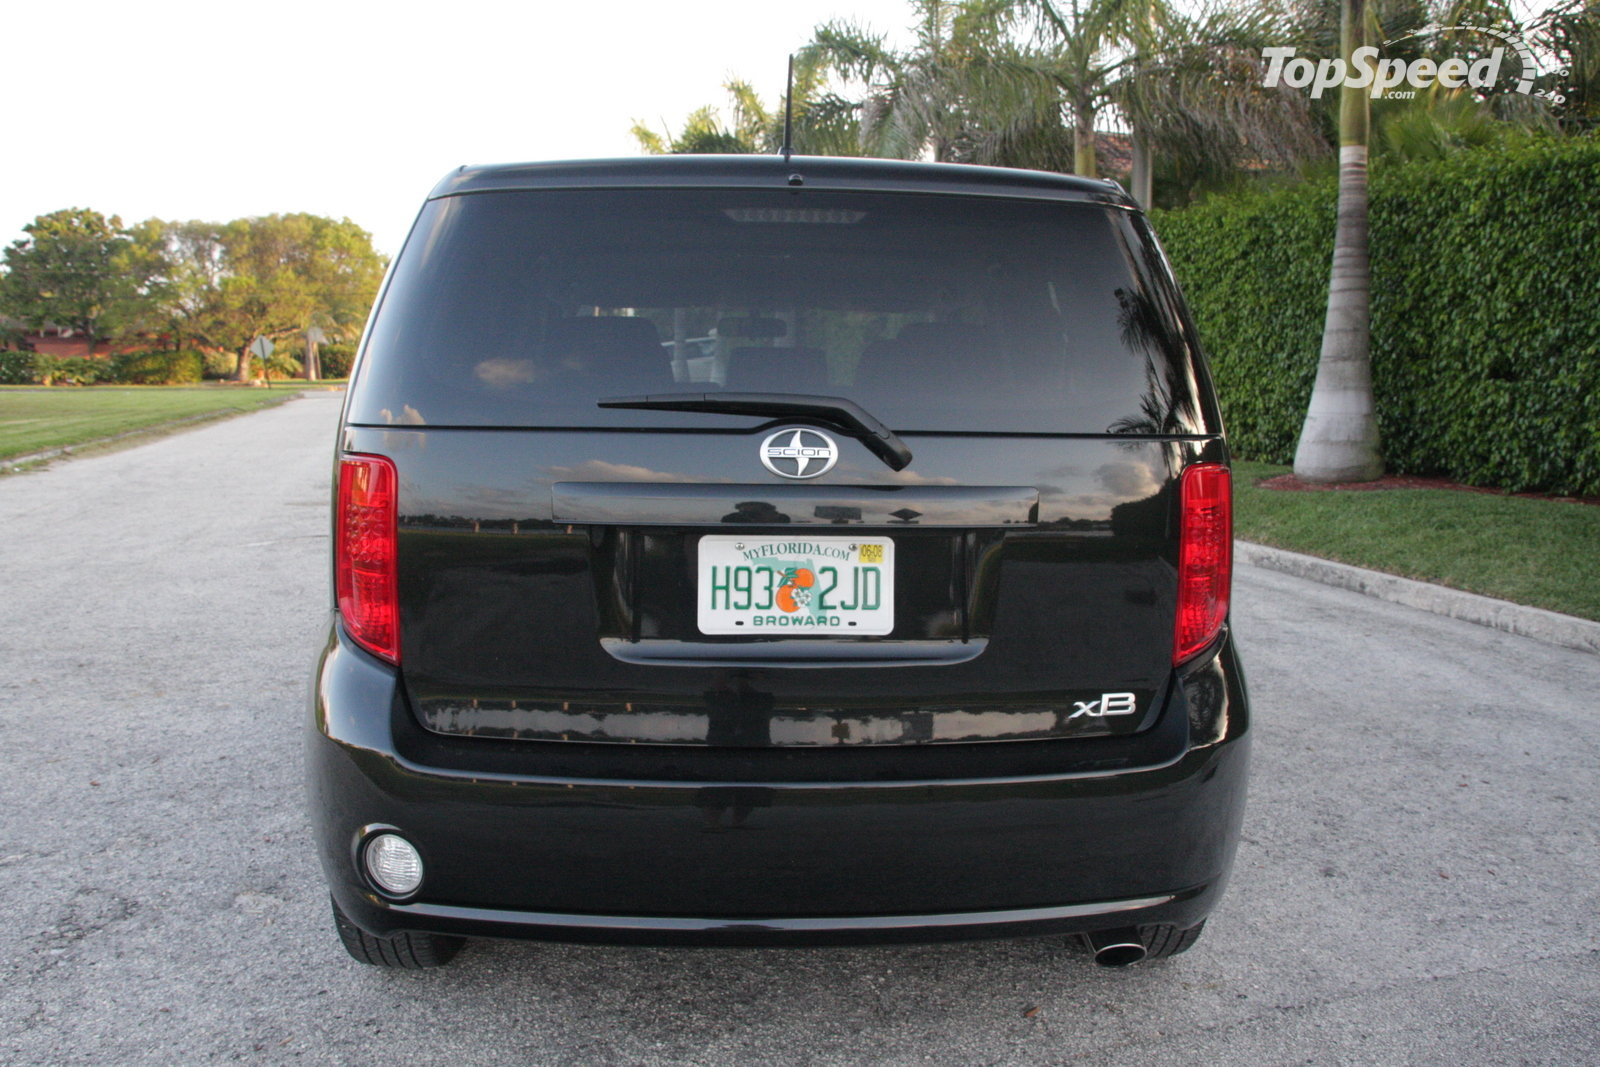 2008 scion xb picture 245992 car review top speed. Black Bedroom Furniture Sets. Home Design Ideas